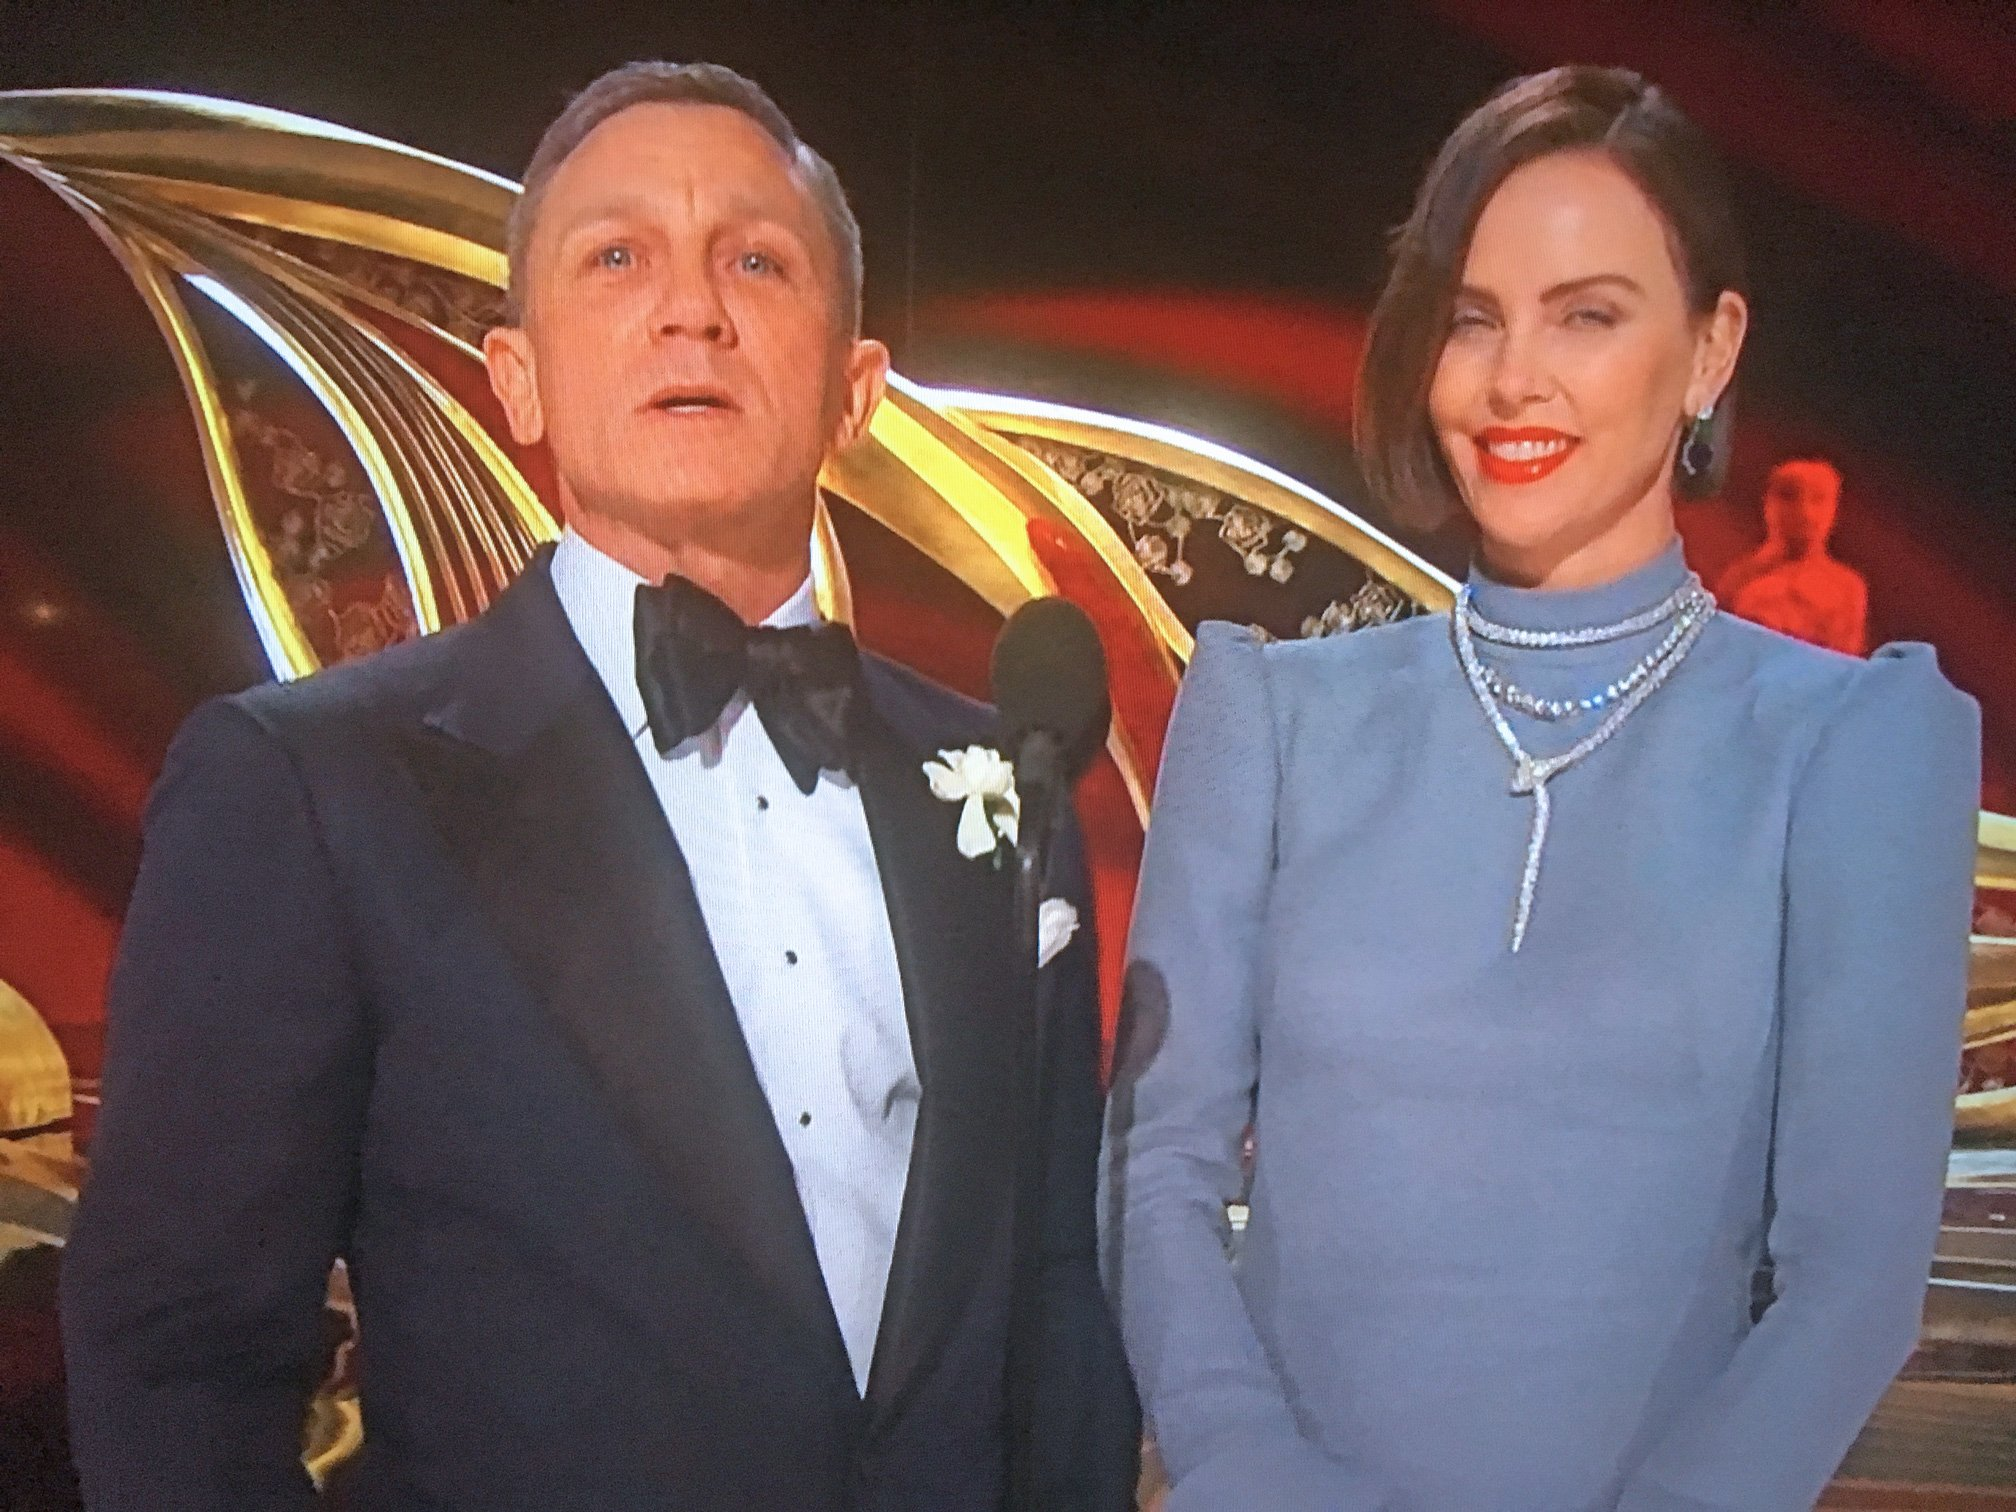 Daniel Craig at the 2019 Oscars – The Suits of James Bond